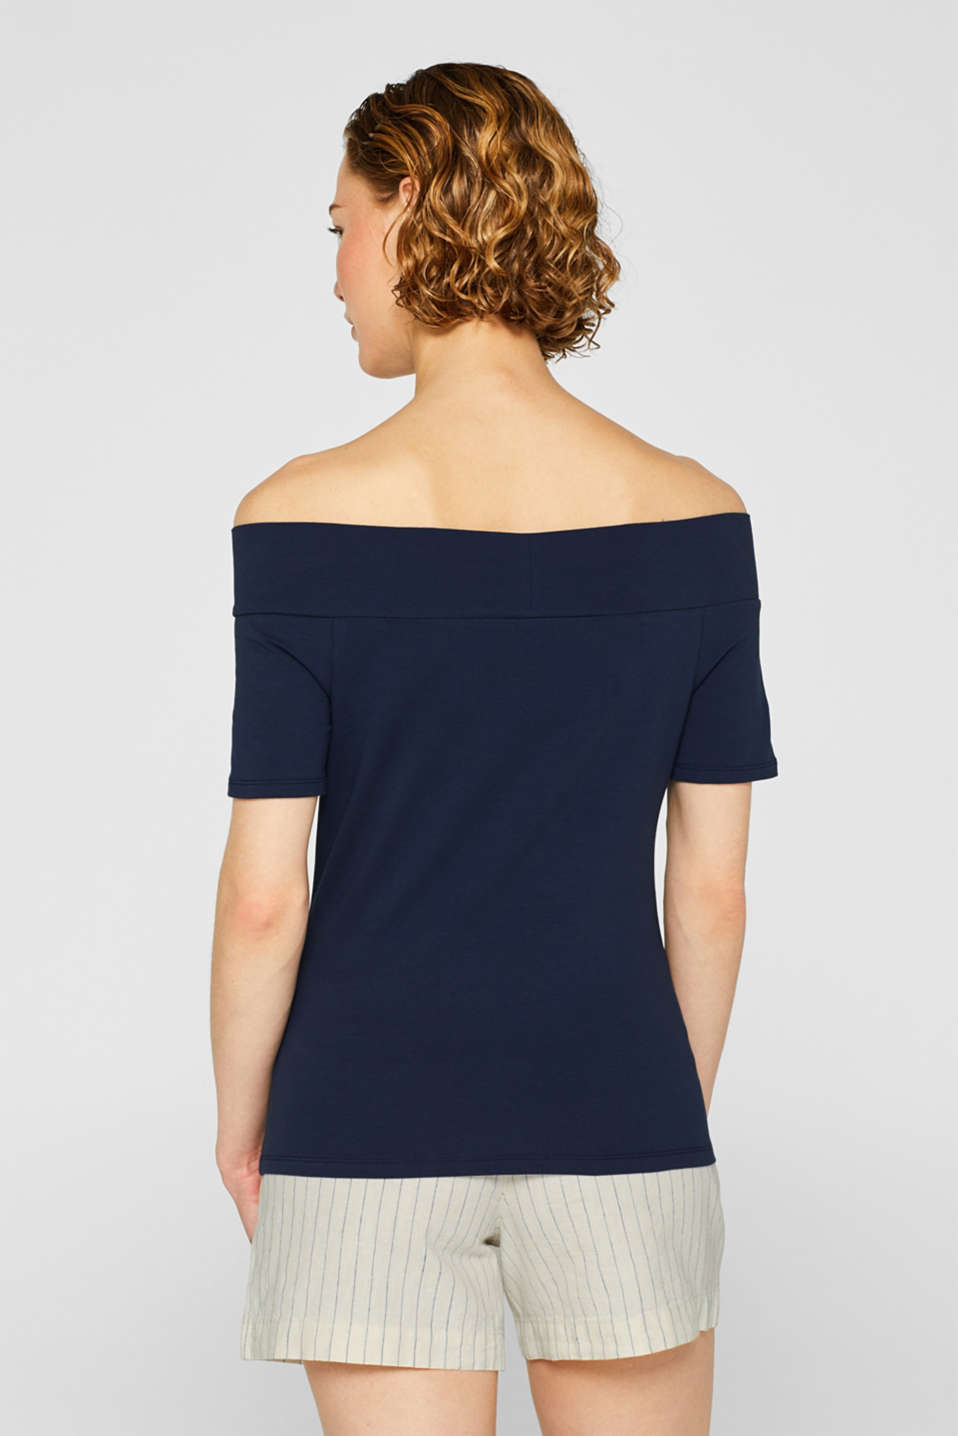 Stretch T-shirt with a Carmen neckline and bow detail, NAVY, detail image number 3